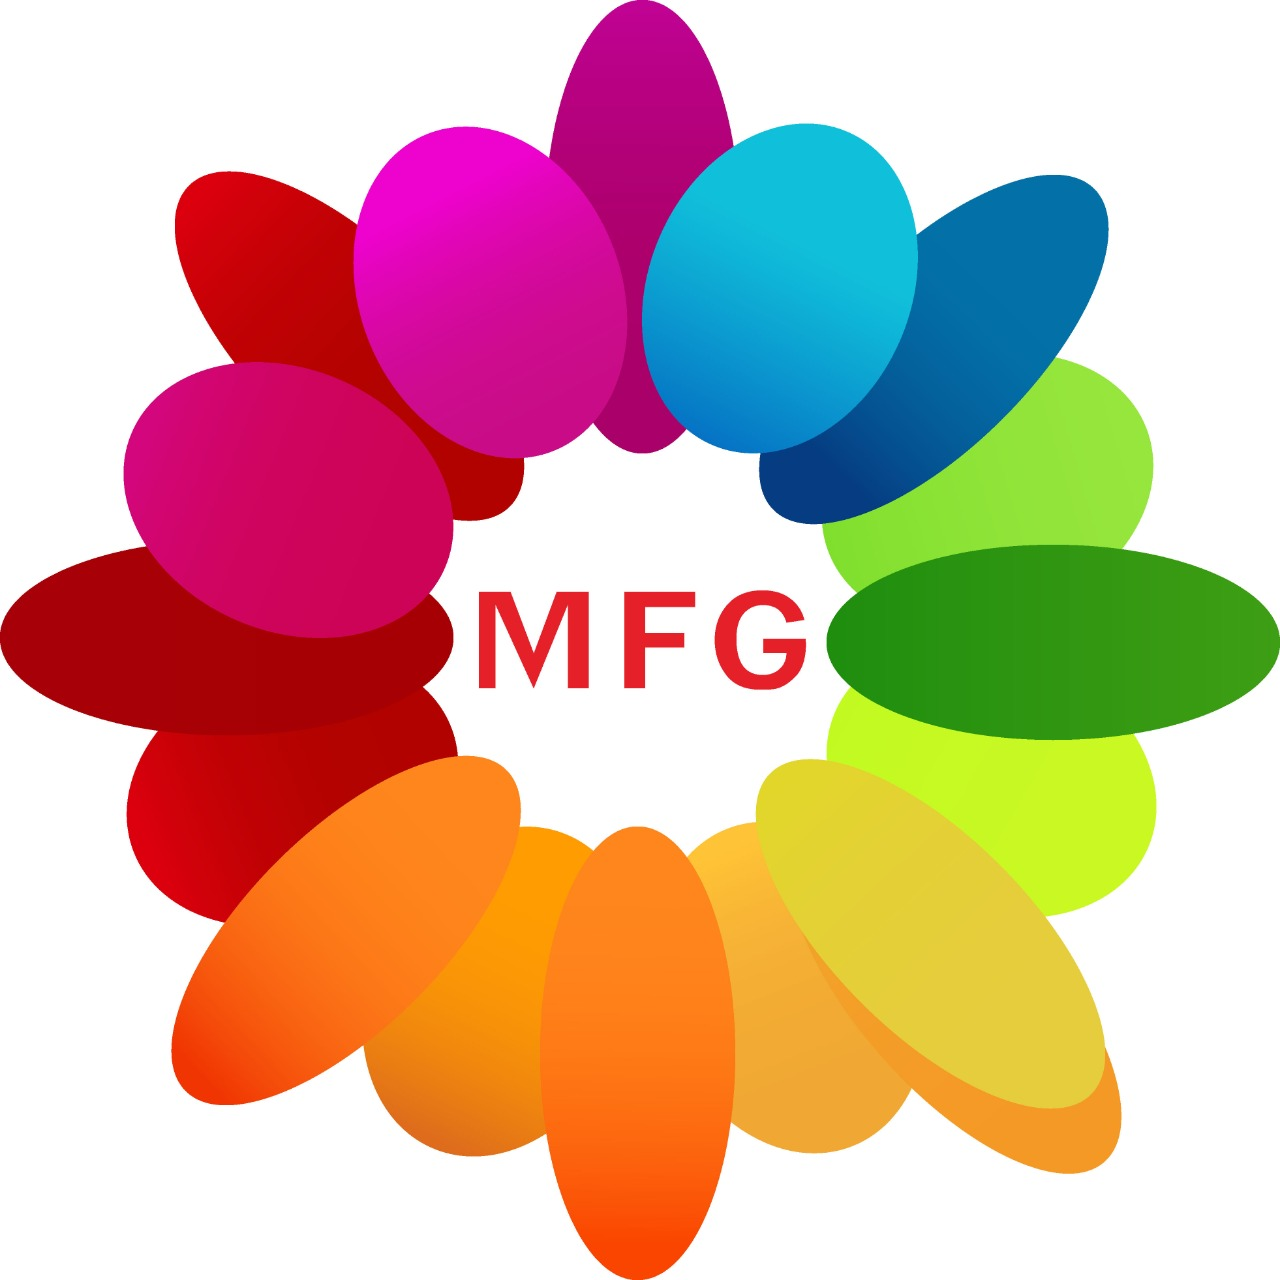 Bunch of 20 red roses with basket of cashew and pistachio